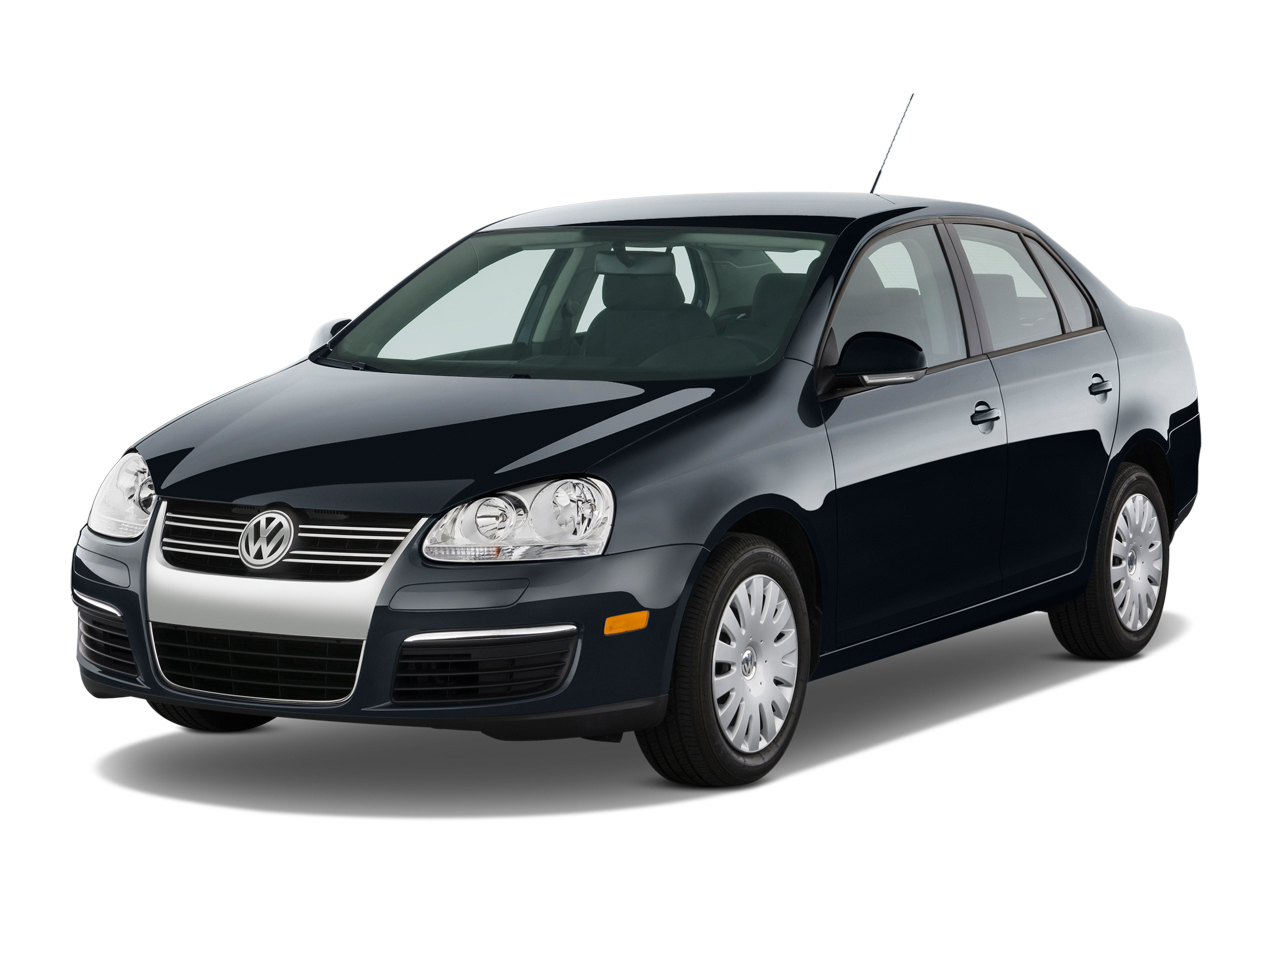 2010 volkswagen jetta sedan vw review ratings specs prices and photos the car connection. Black Bedroom Furniture Sets. Home Design Ideas